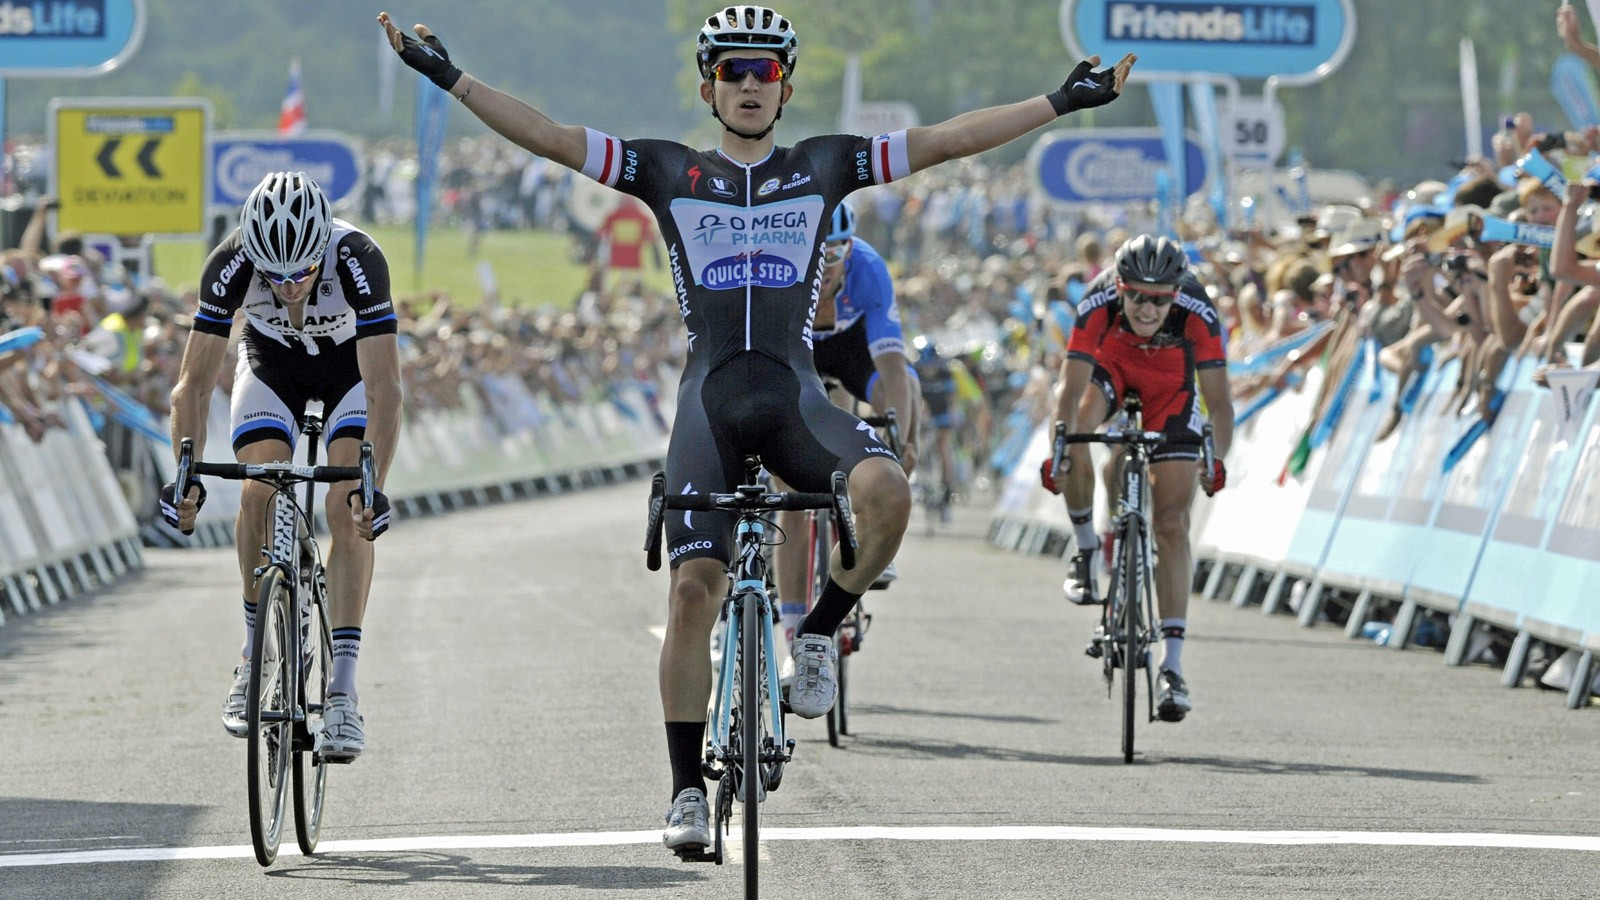 Michal Kwiatkowski (Omega Pharma-QuickStep) moved into the overall lead with victory on stage 4